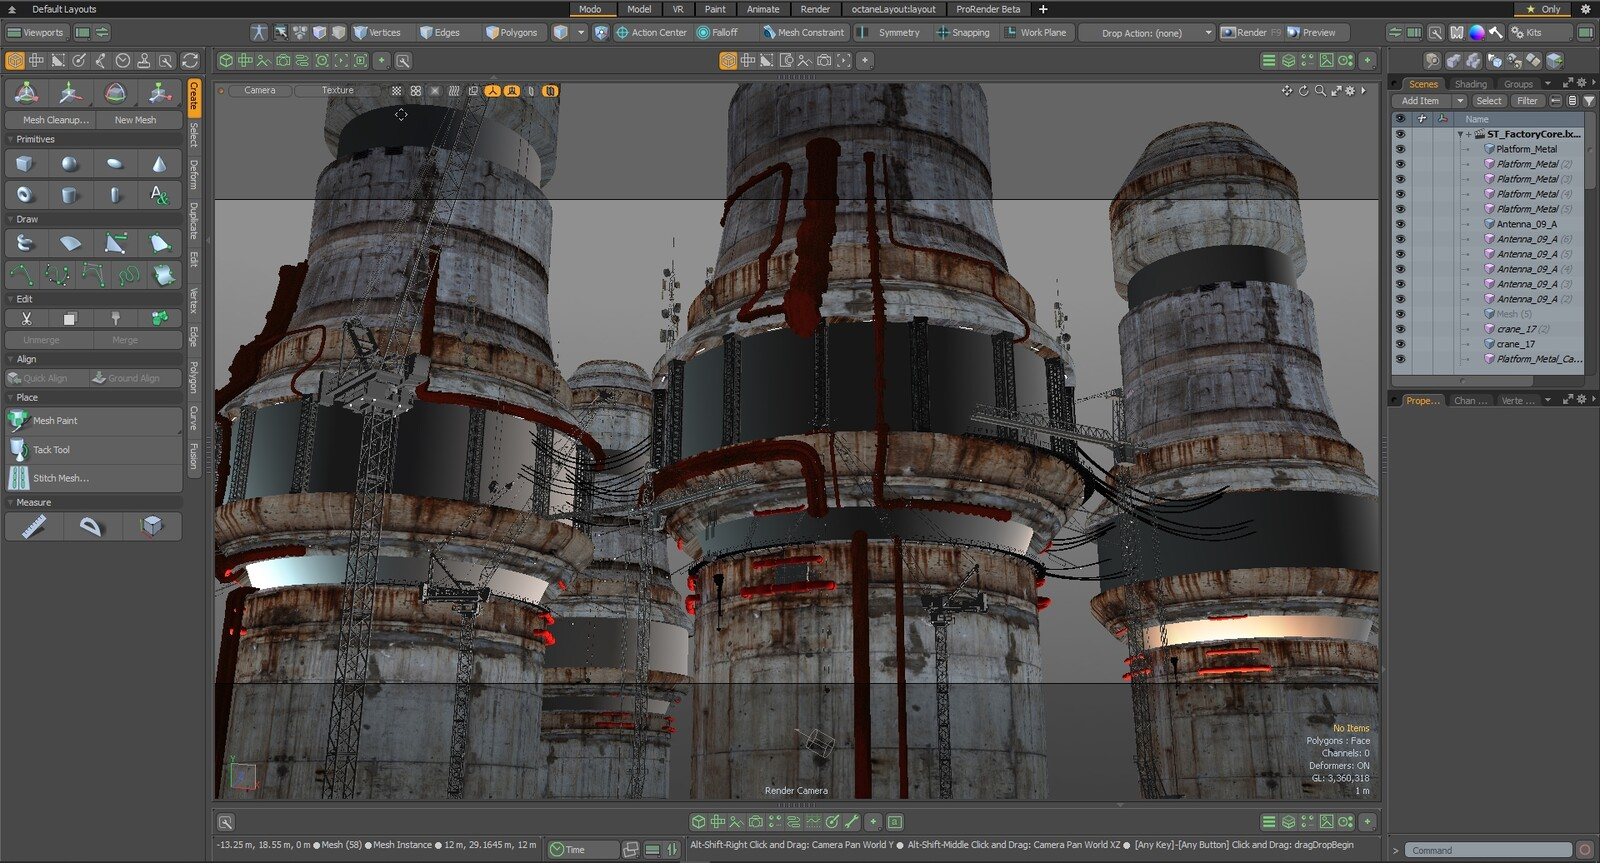 Here's the Modo view. Note that... they're really just cylinders.